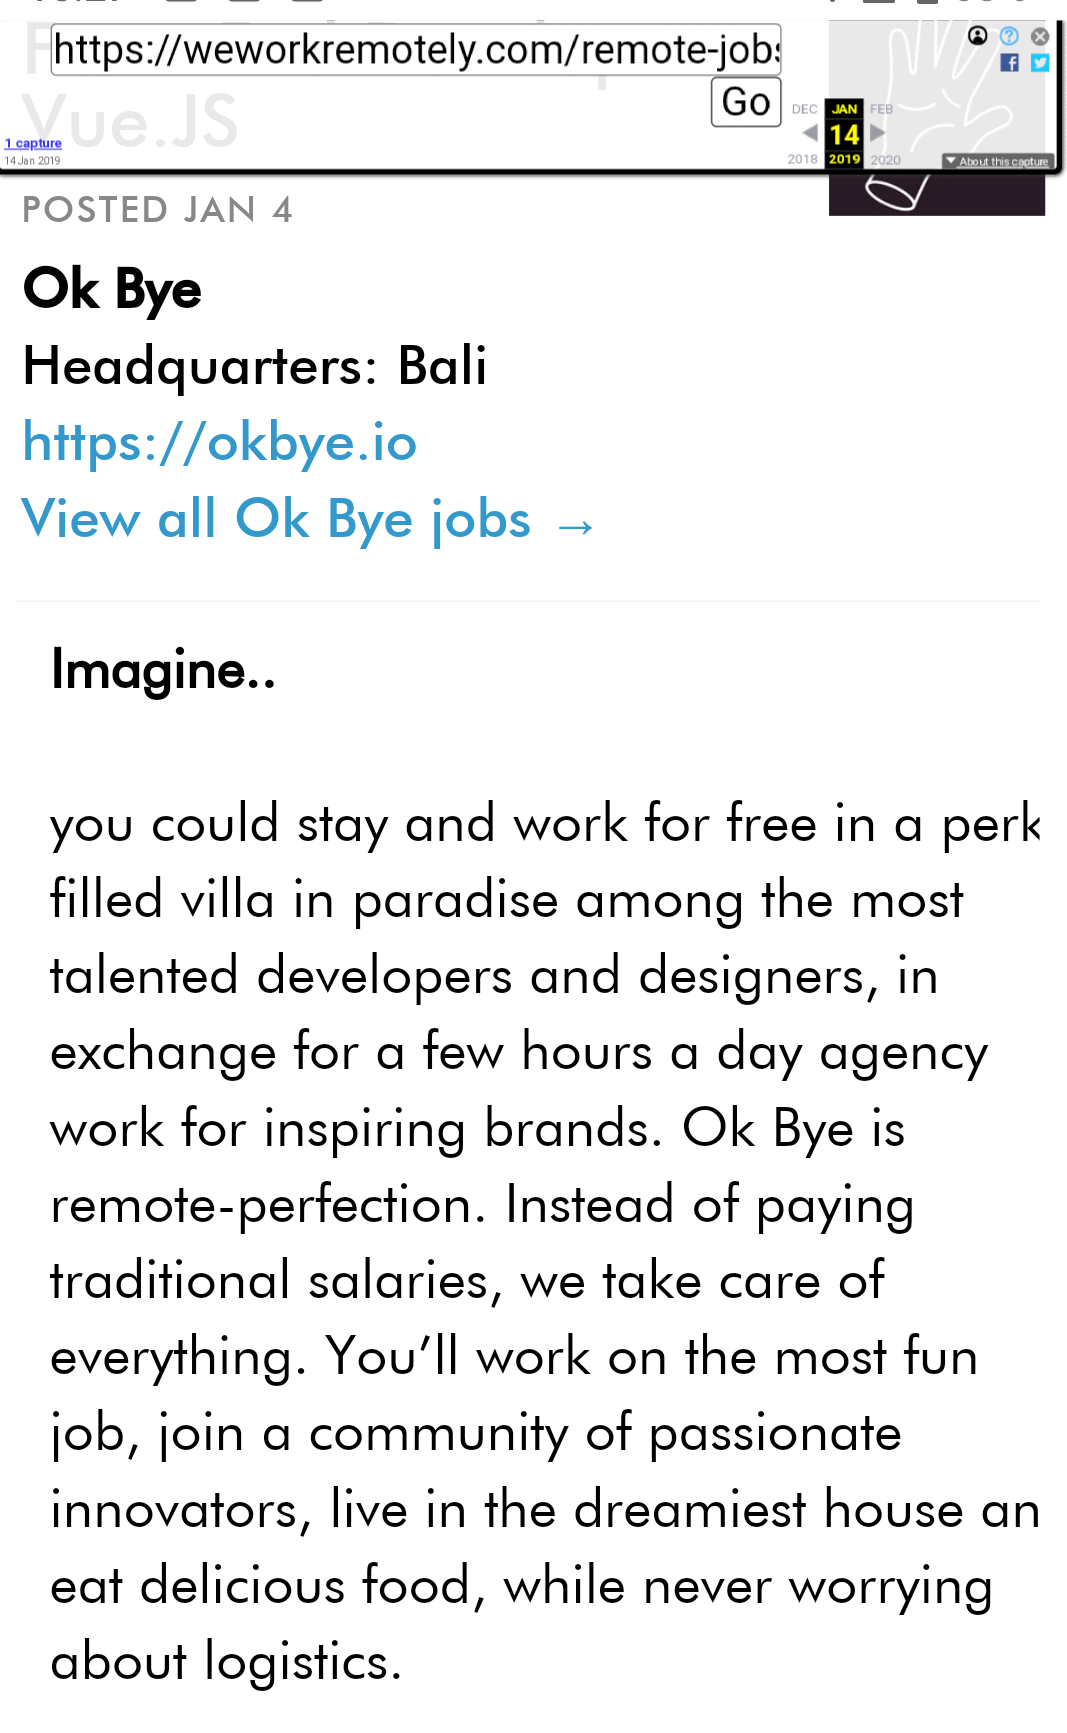 The Remote Job That Didn't Pay a Salary: OK Bye - Digital